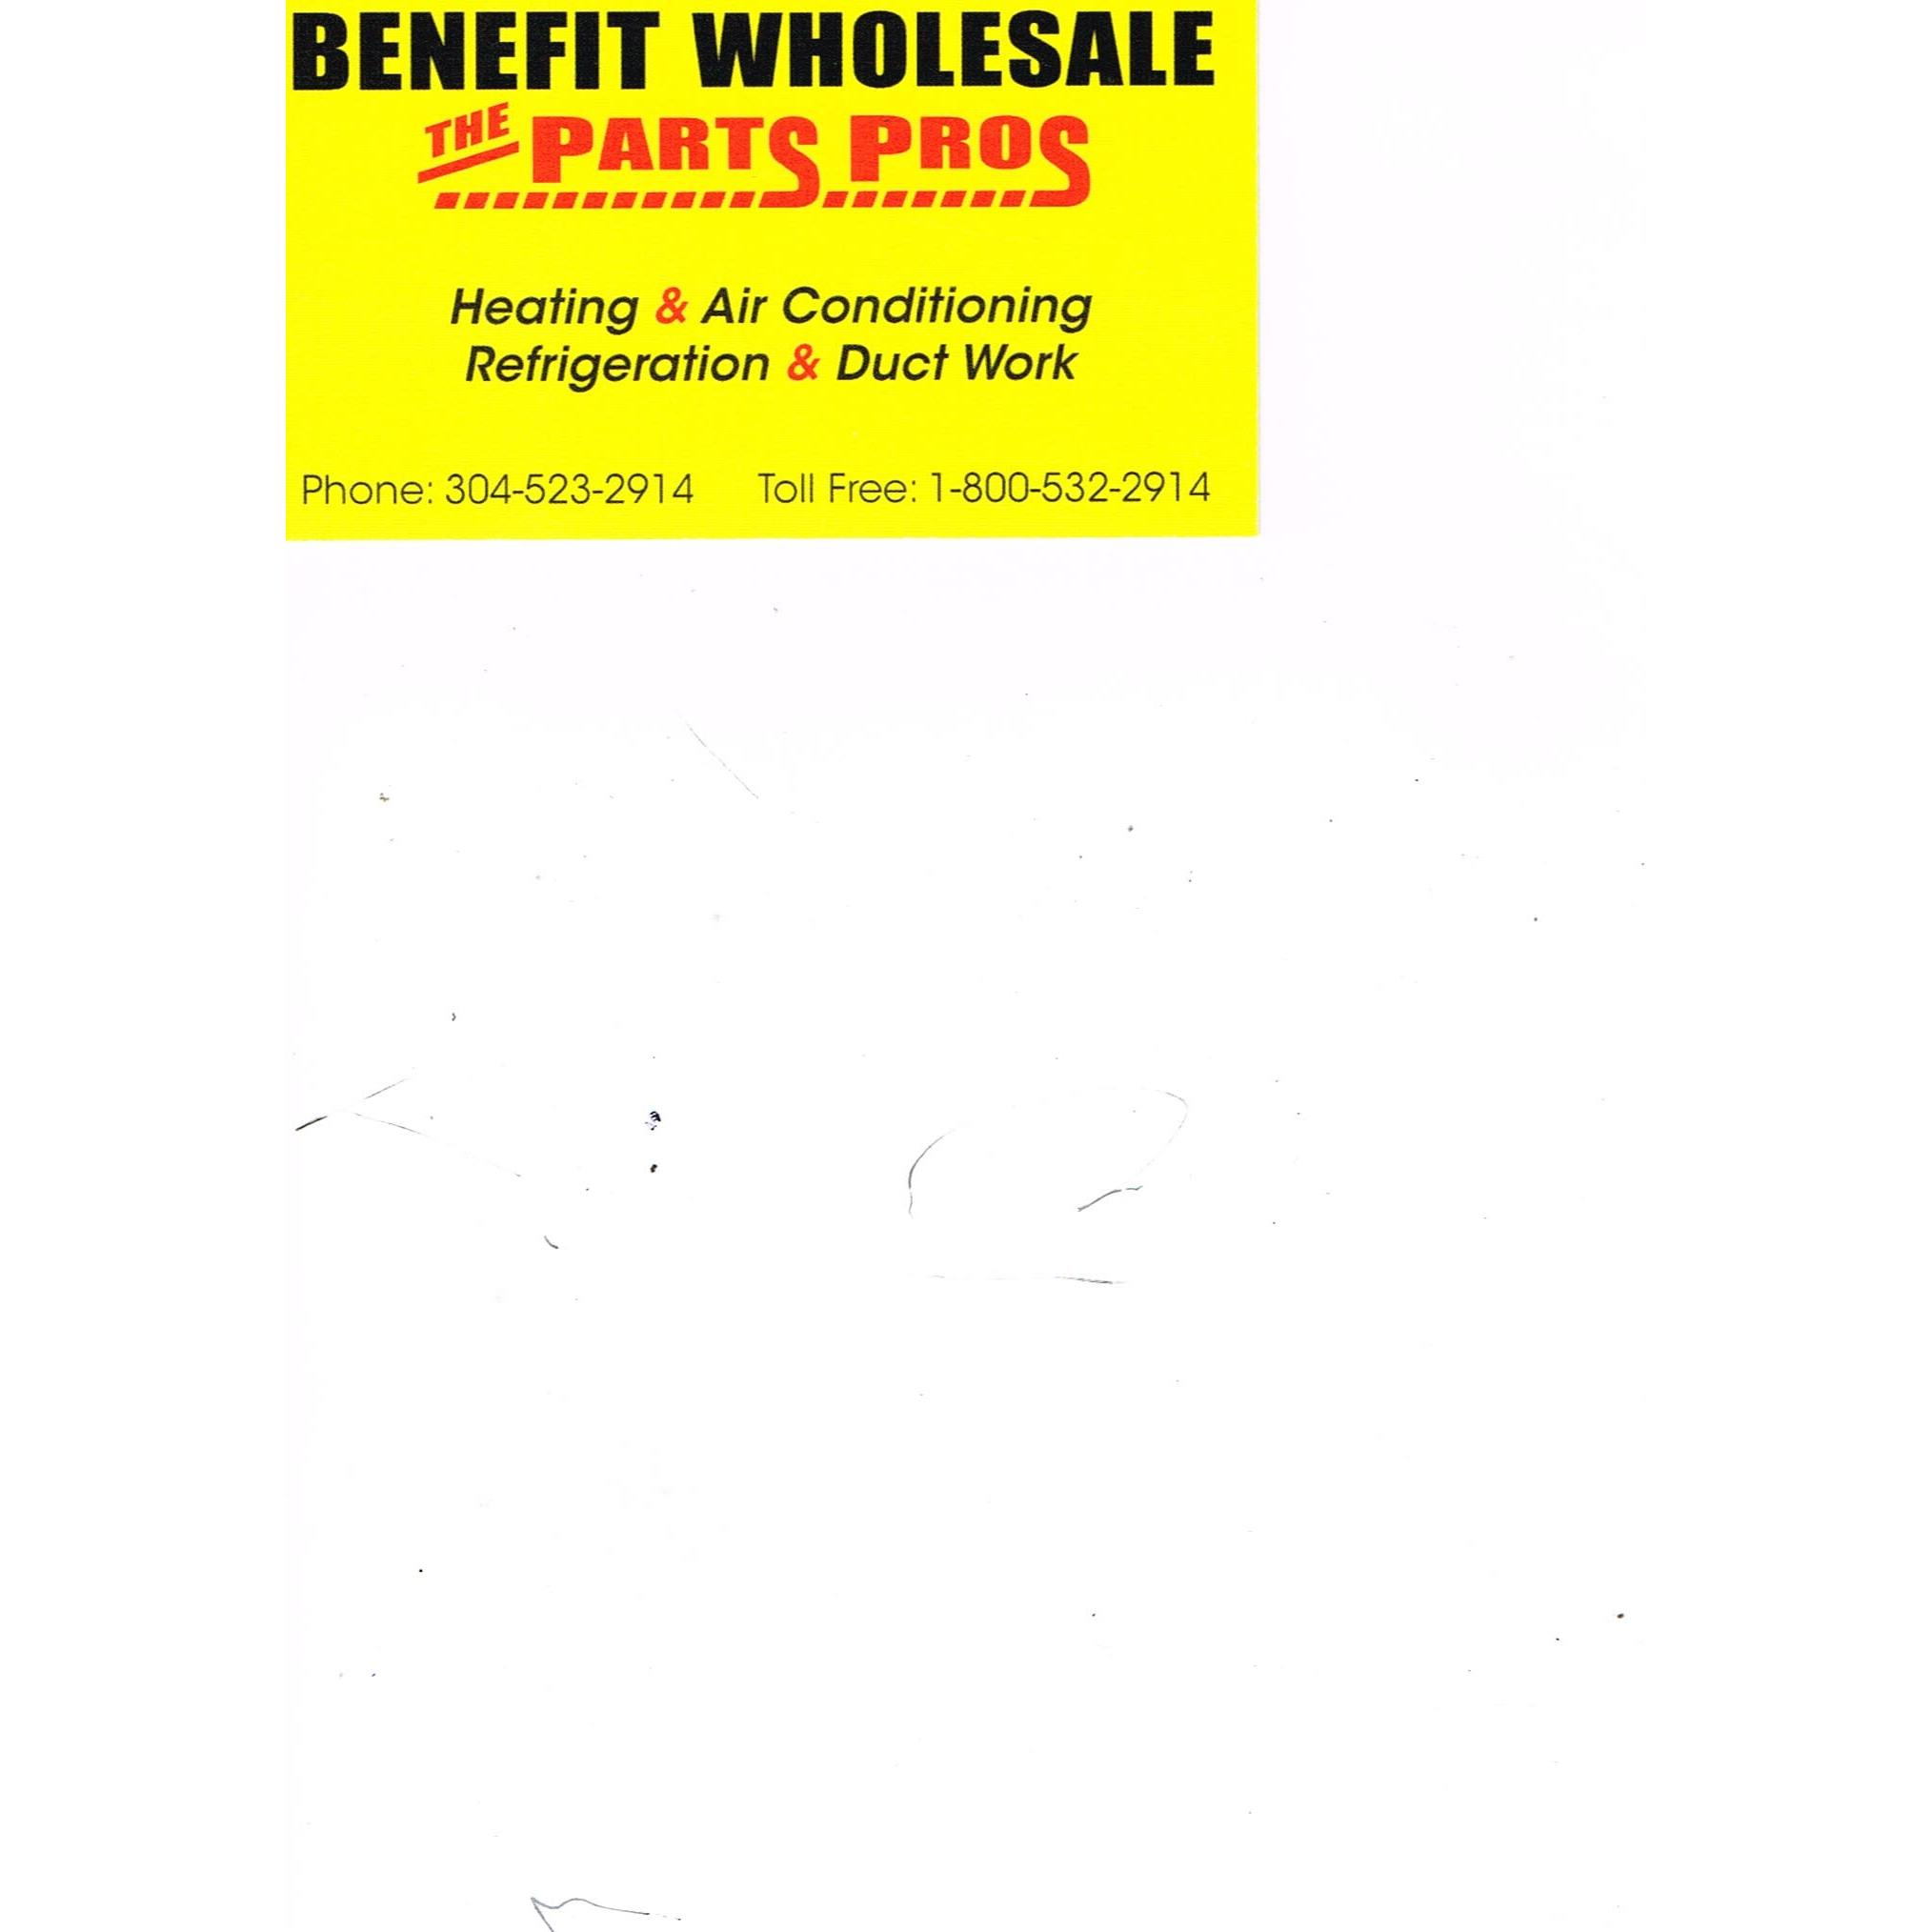 Benefit Wholesale Equipment - Huntington, WV - Heating & Air Conditioning